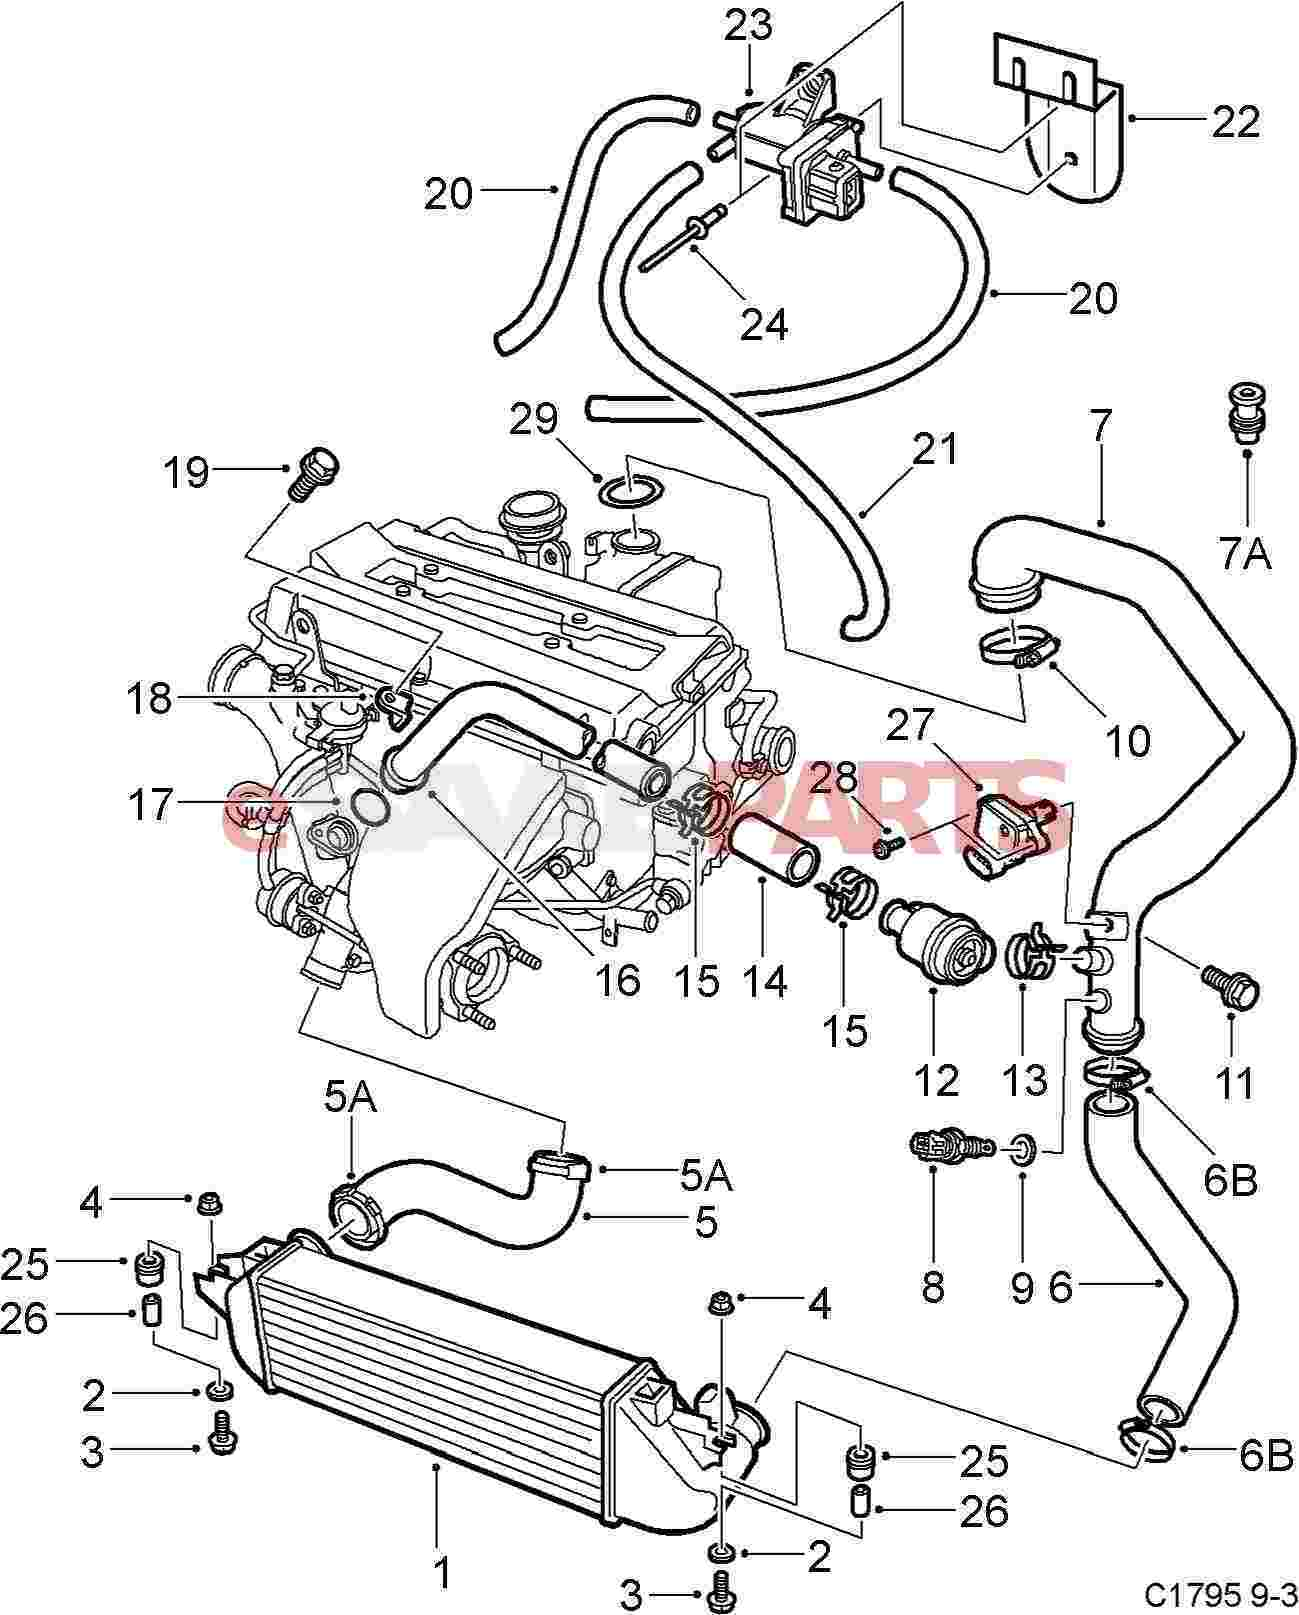 [WRG-6981] Jaguar Xj6 Engine Diagram